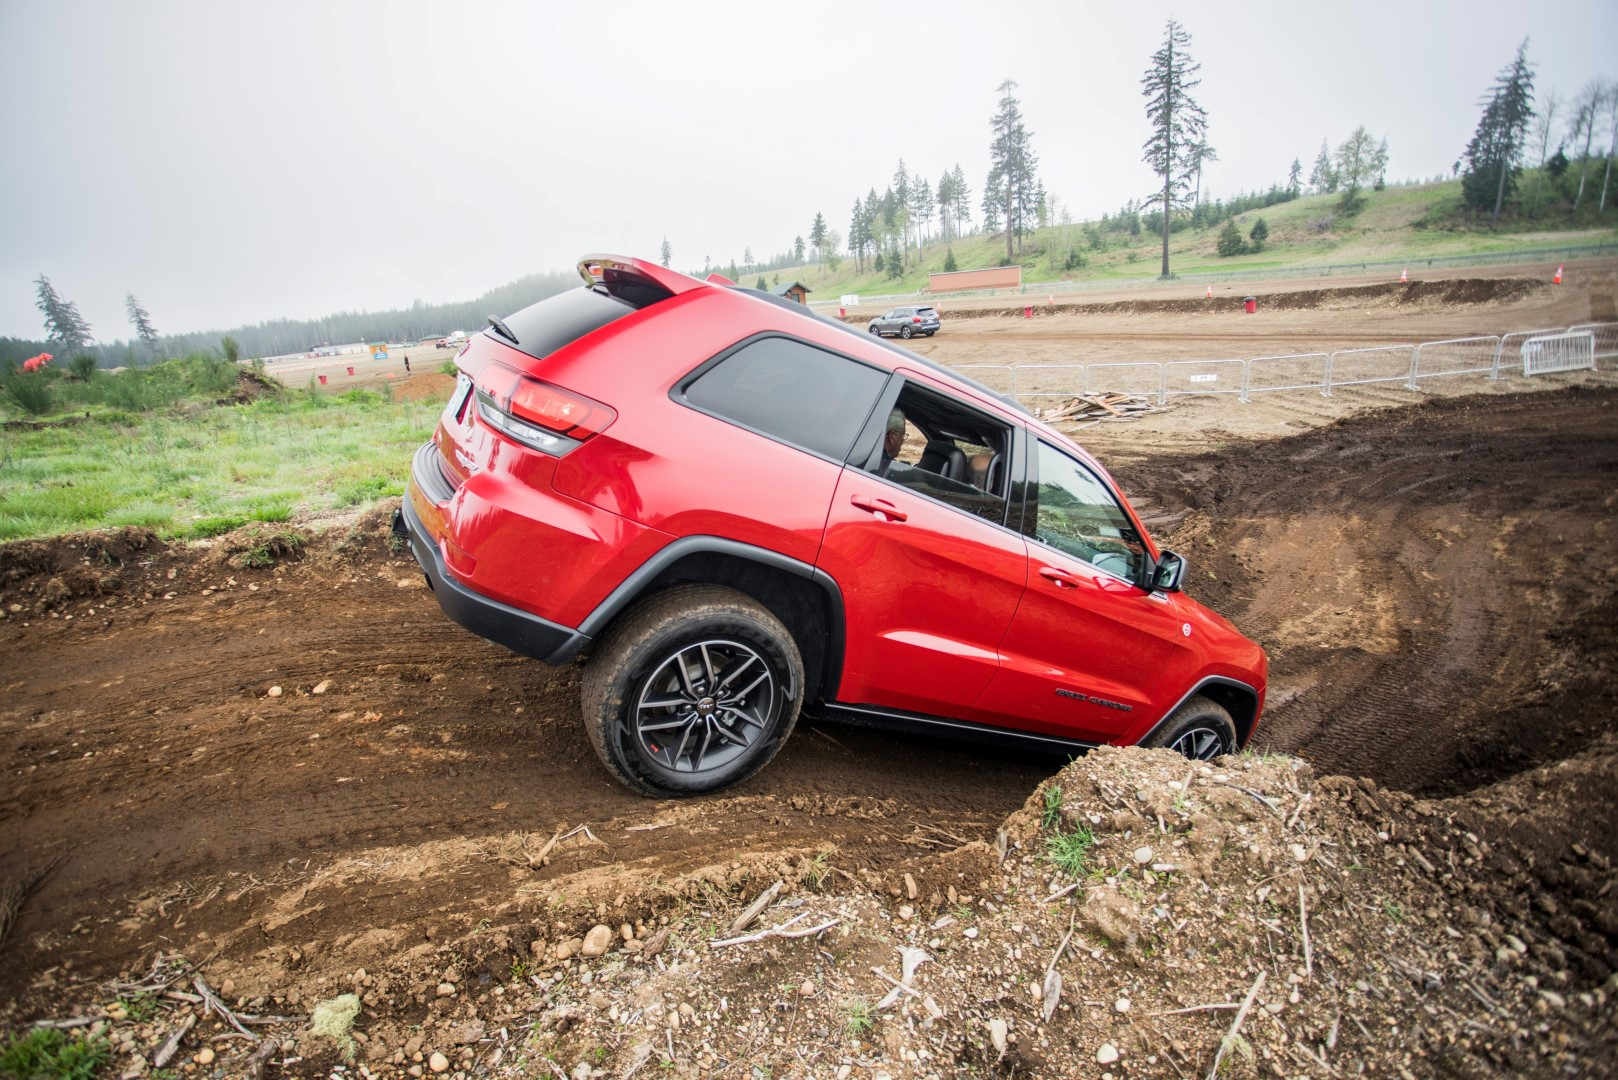 Jeep Grand Cherokee Trailhawk off road